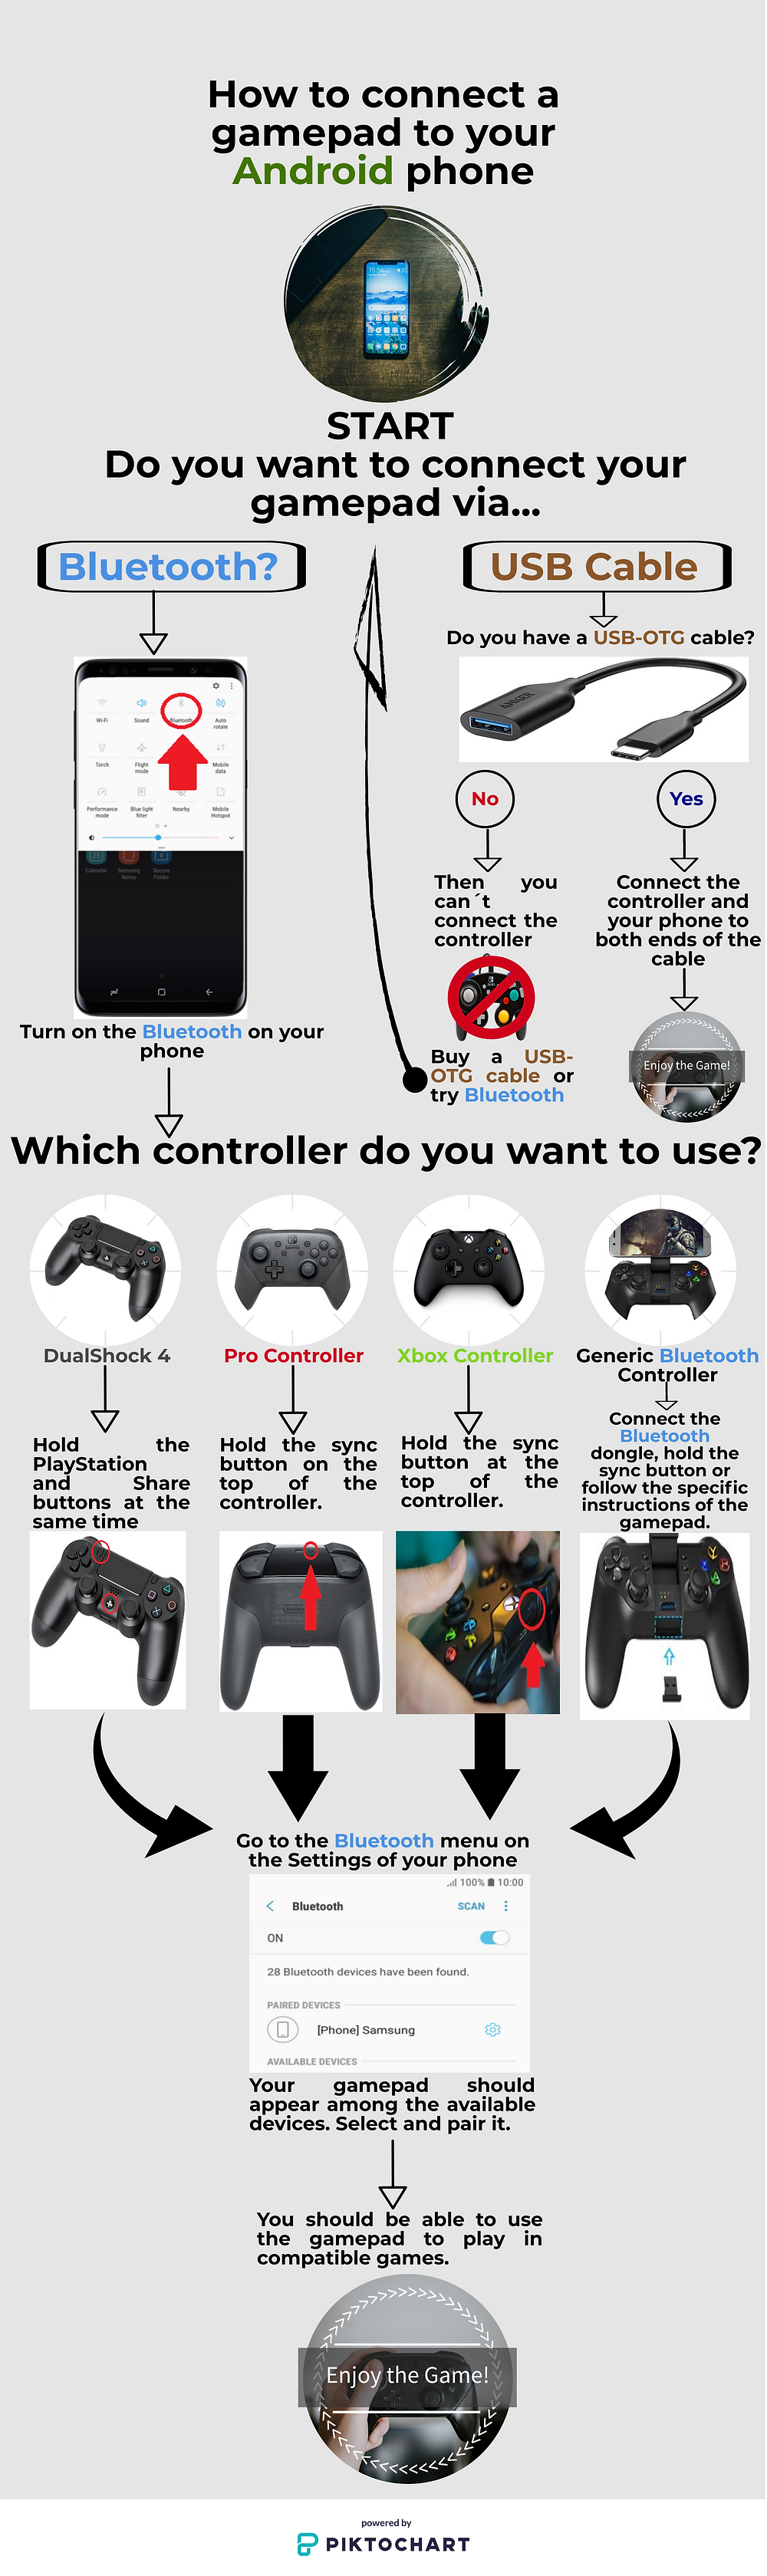 A flowchart Infographic explaining how to connect a gamepad to an Android Phone step by step, either by Bluetooth or with a USB cable.